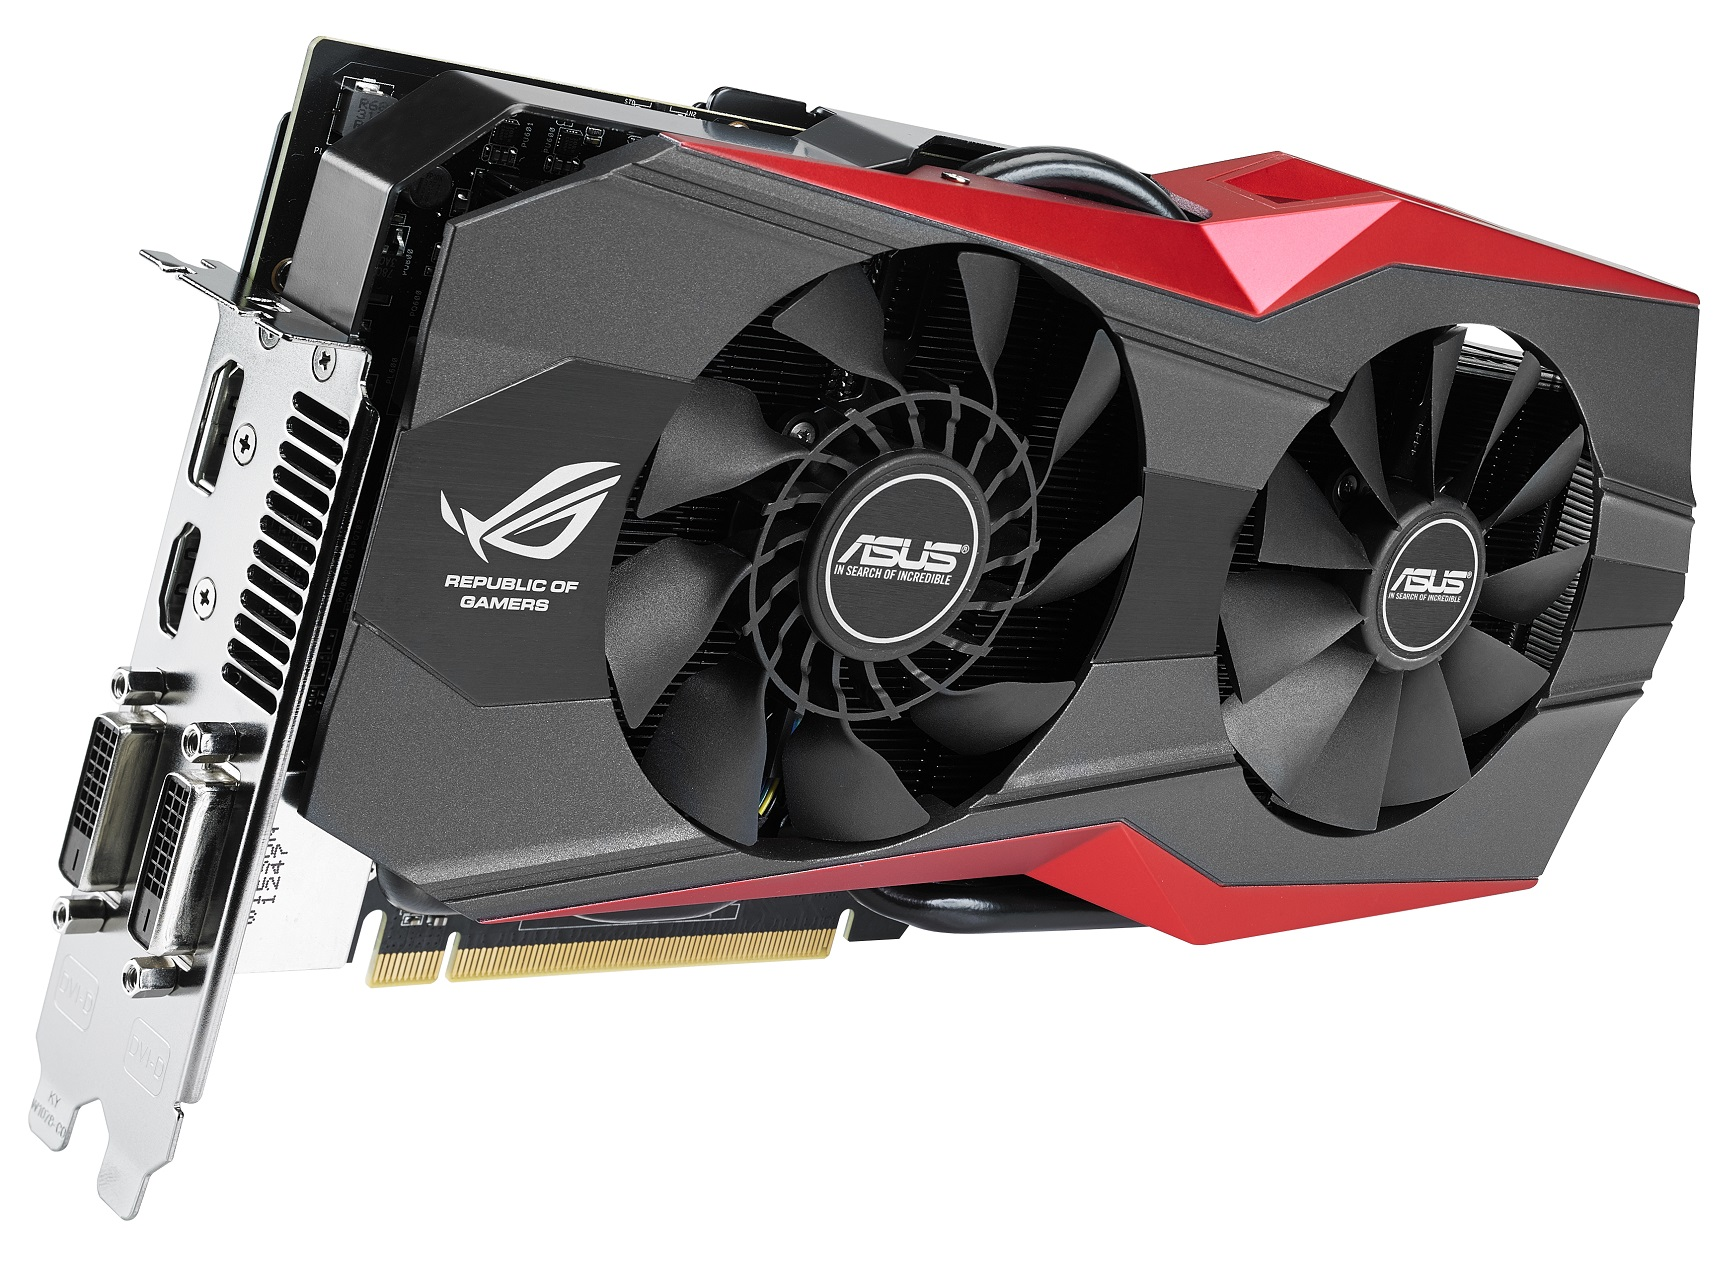 ASUS R9 290X DRIVERS FOR WINDOWS 10